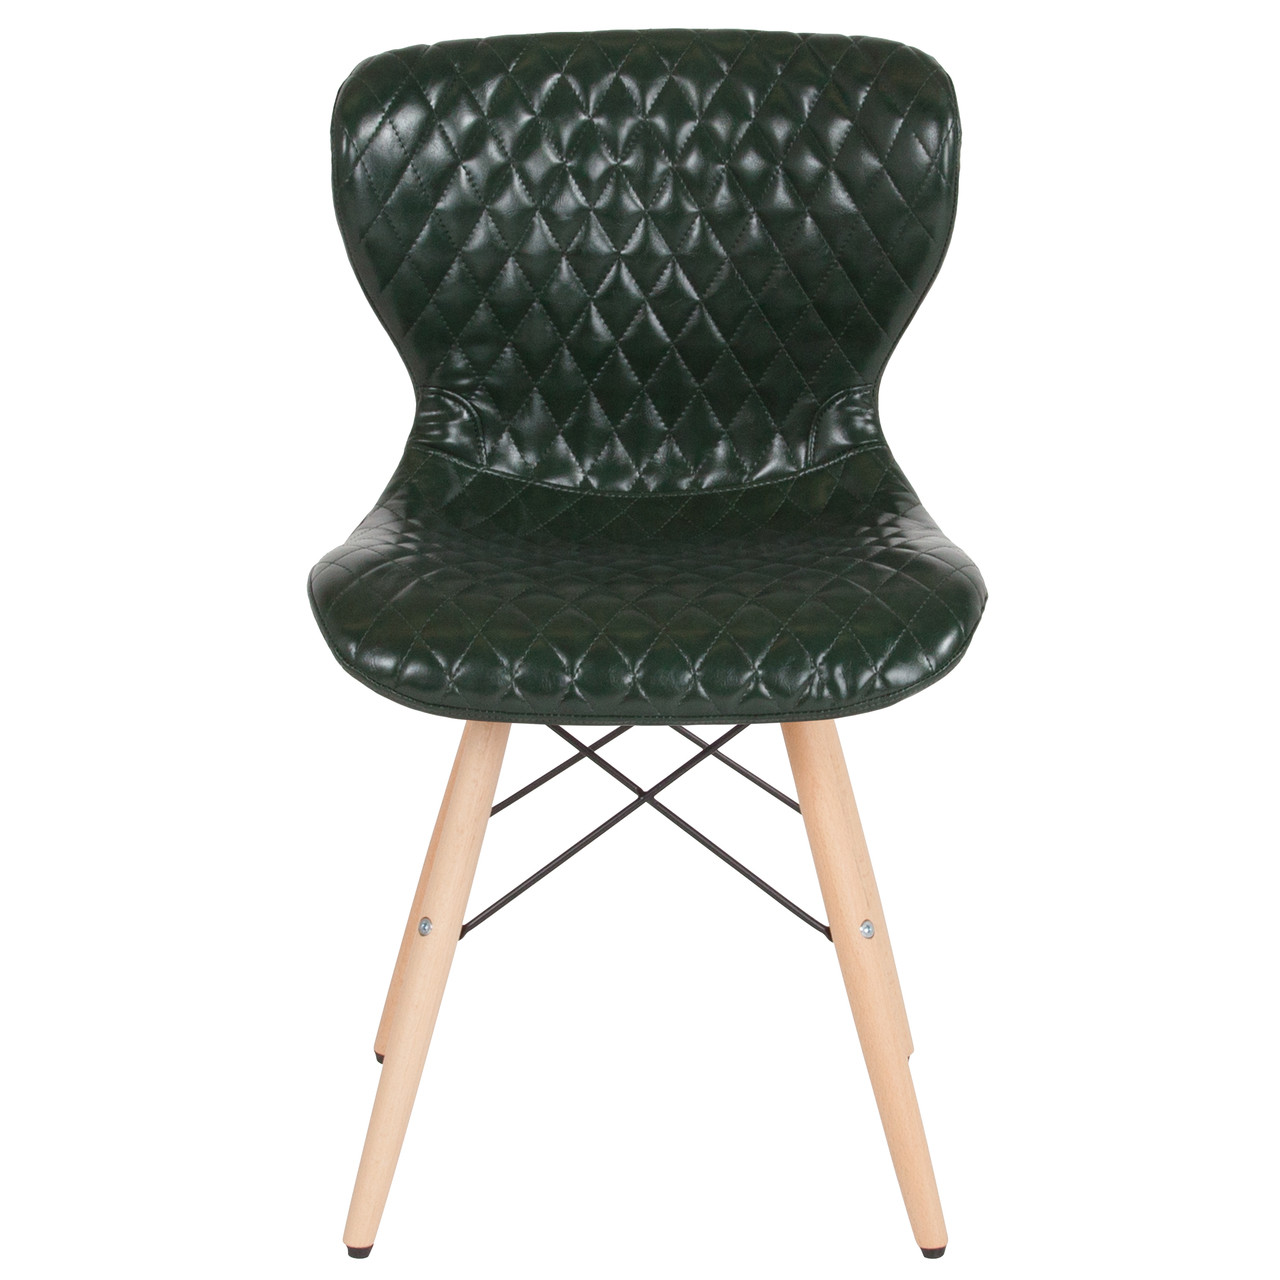 Green Upholstered Chair Flash Furniture Riverside Contemporary Upholstered Chair With Wooden Legs In Green Vinyl